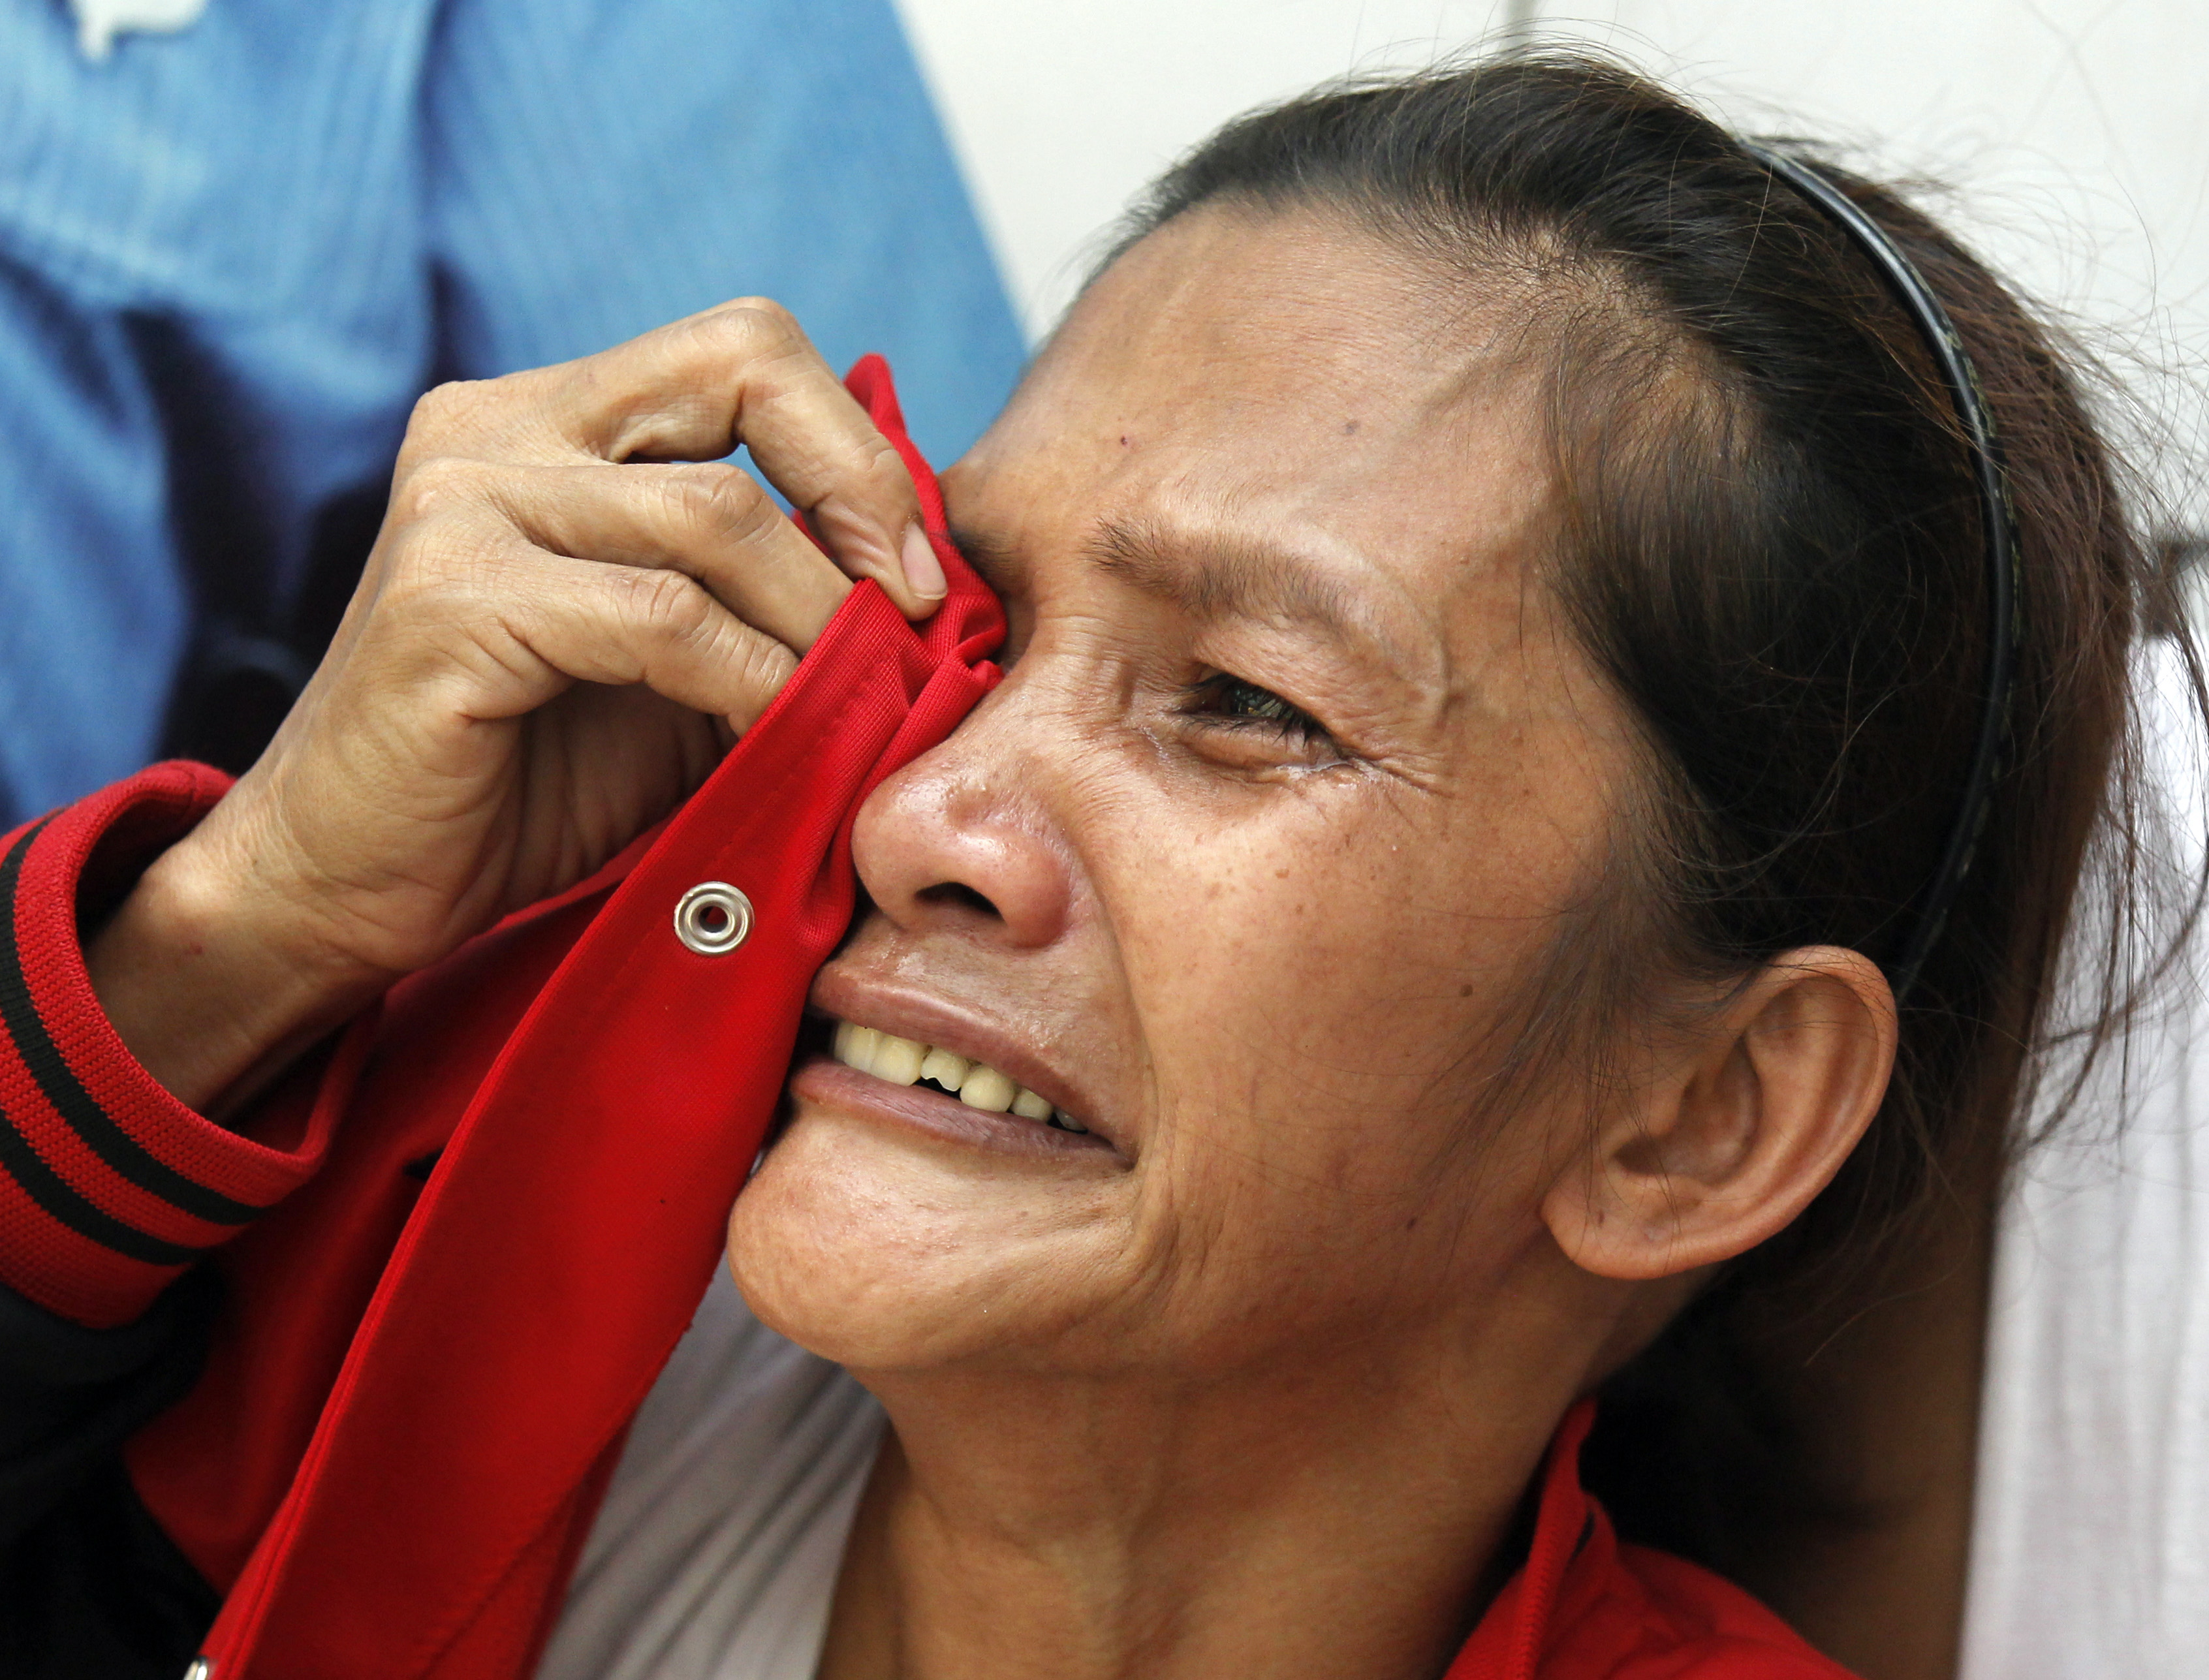 BENEFITS FOR FAMILIES. A Filipino relative of a missing factory worker reacts following a fire at a warehouse in Valenzuela City. The government promises to provide benefits to families of victims. EPA/FRANCIS R. MALASIG